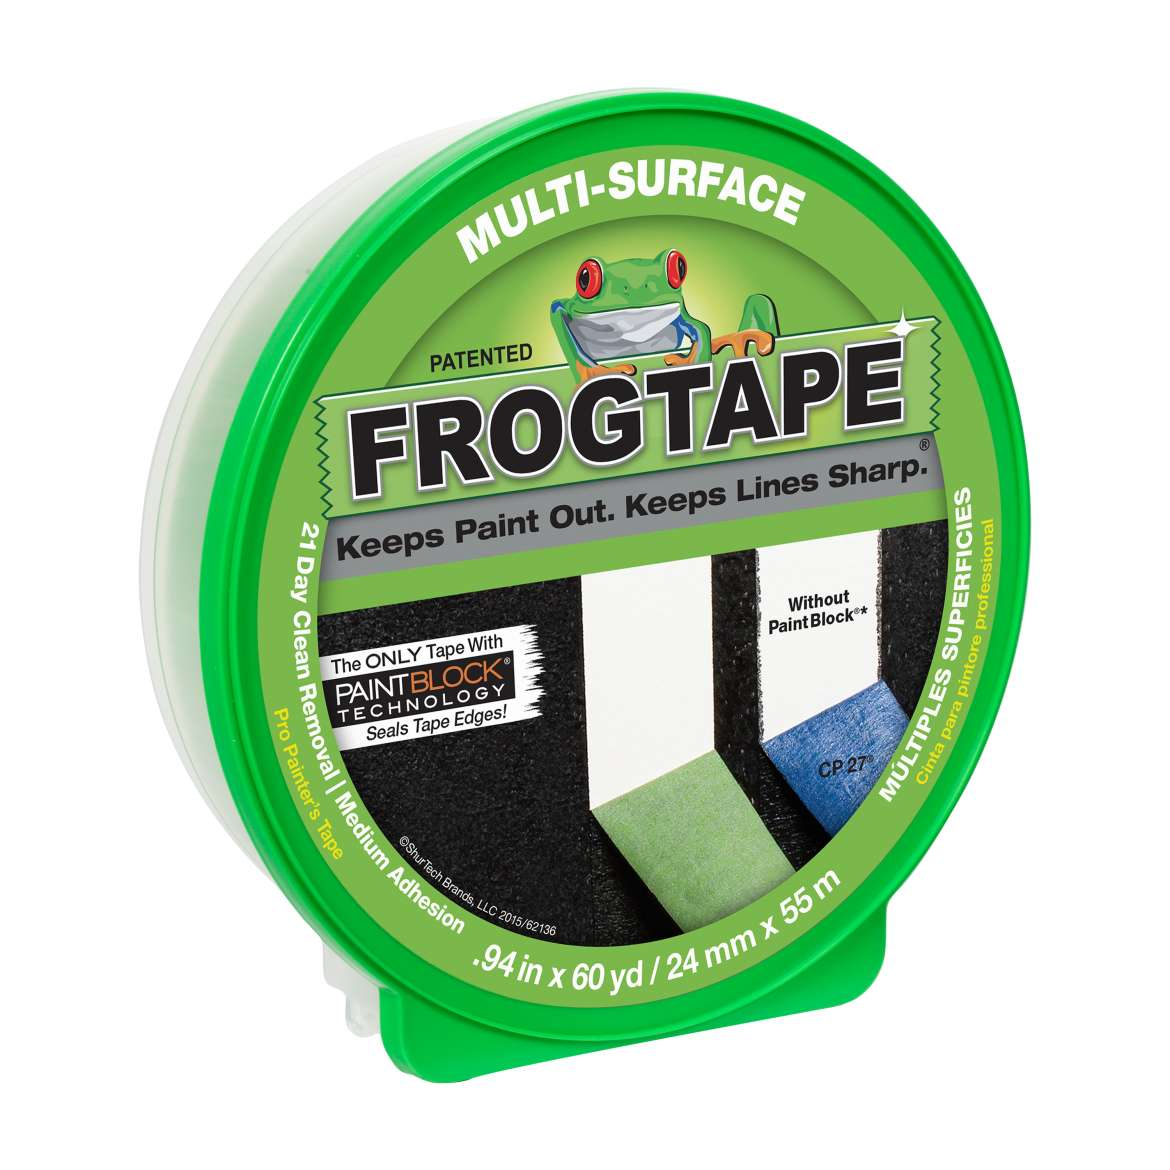 FrogTape Multi-Surface Painter's Tape, 0.94 in. x 60 yds.